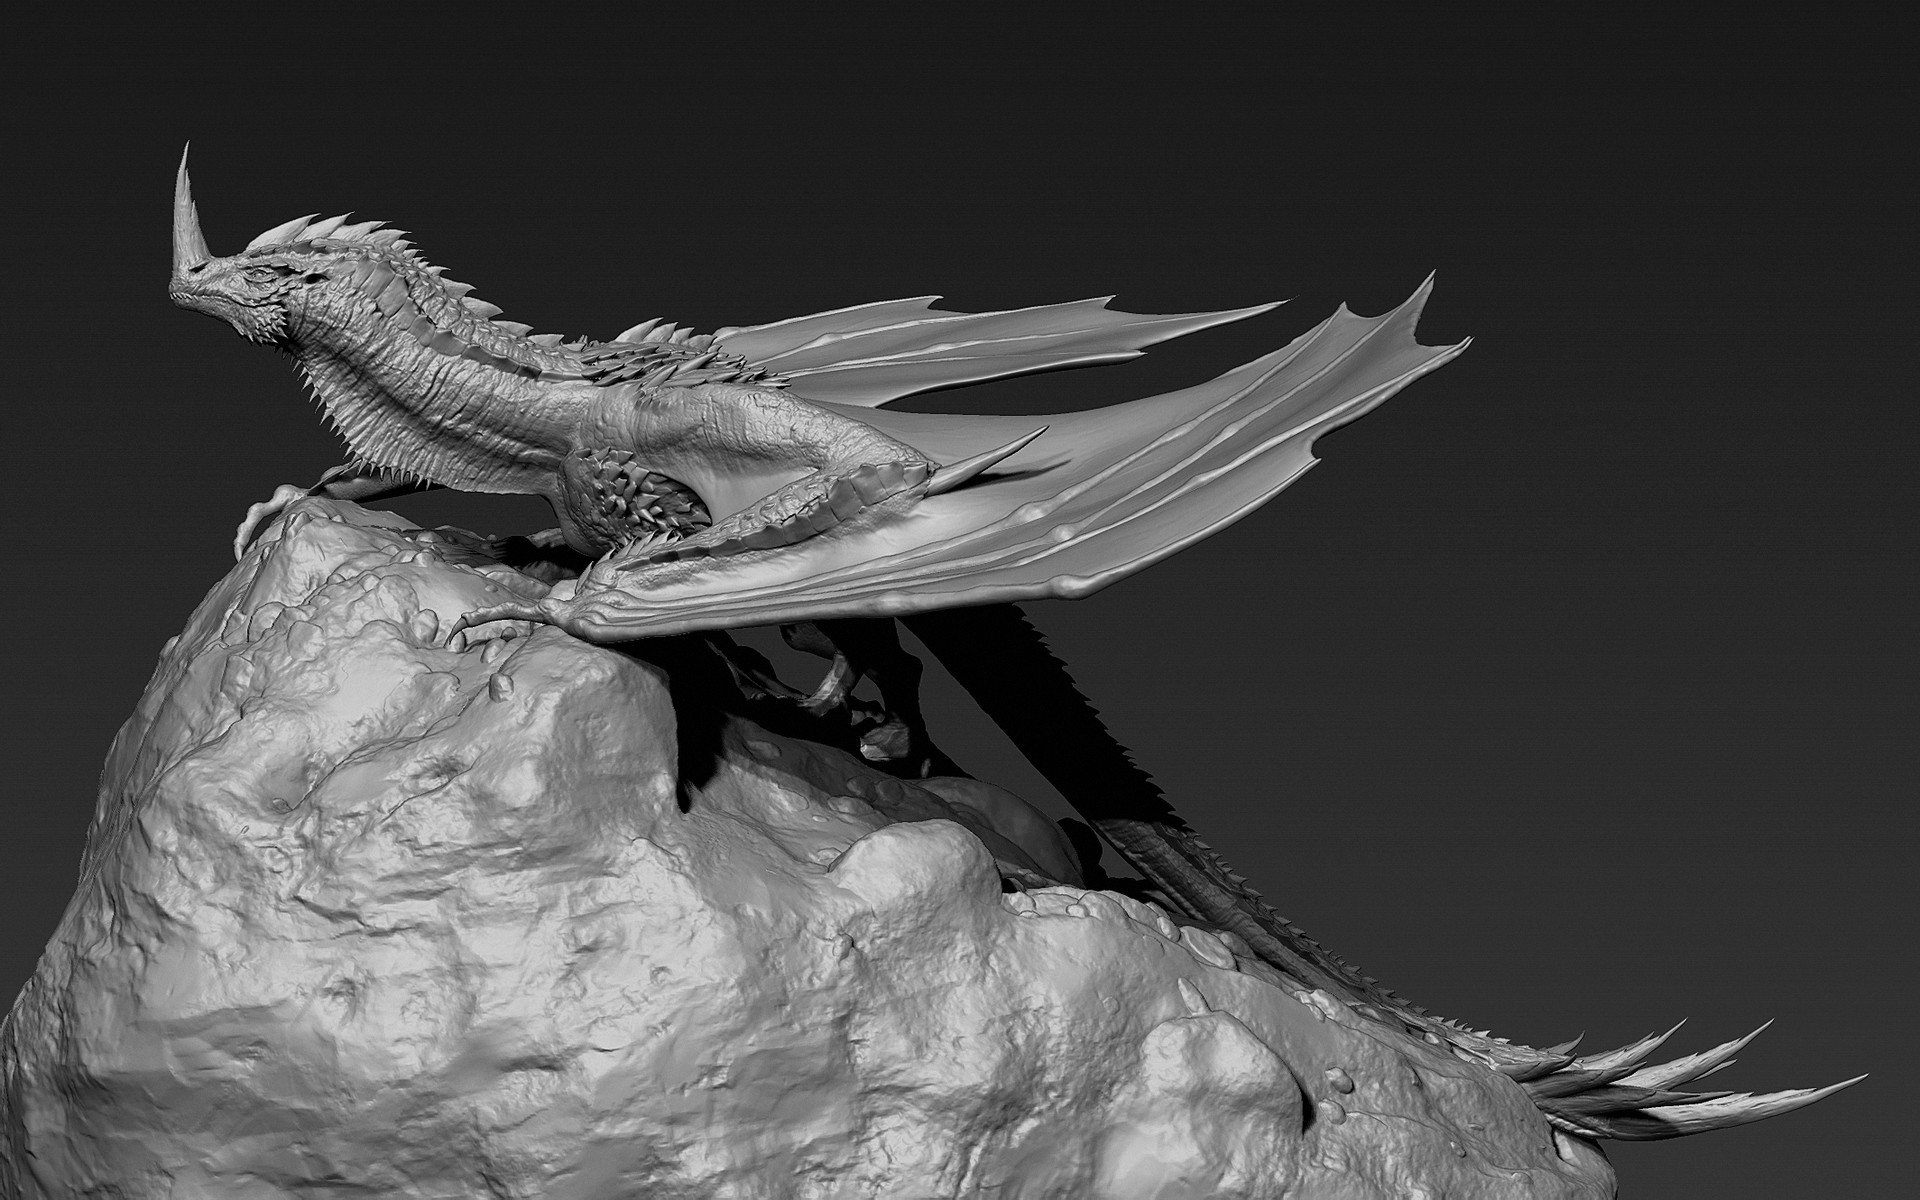 Jia hao 2017 horneddragon digitalsculpting 02 01